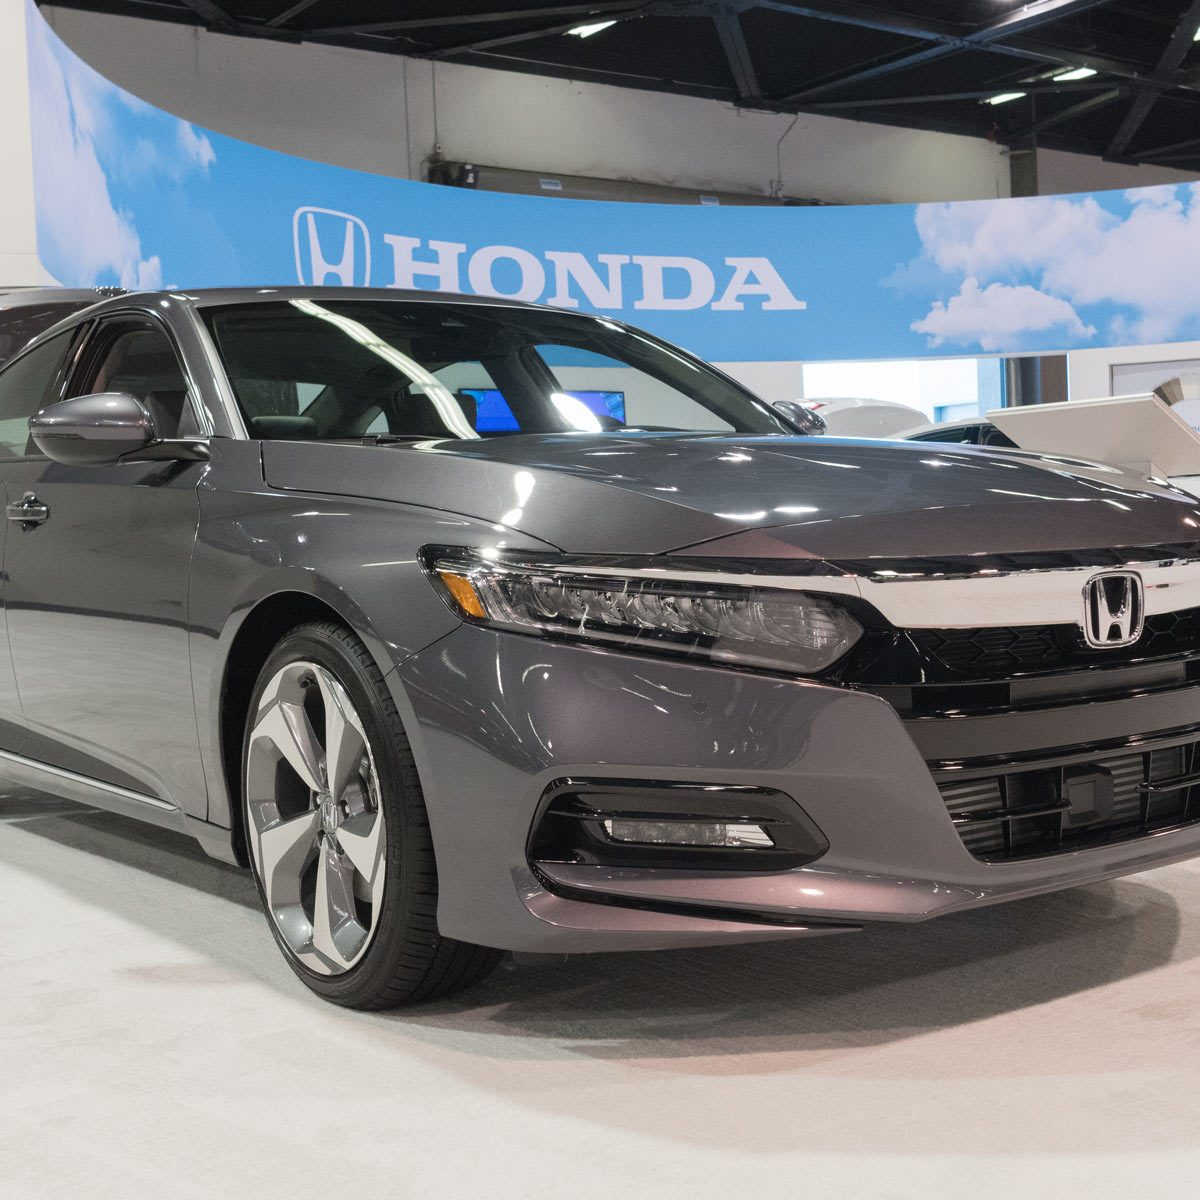 Honda Accord on display at the Orange County International Auto Show.